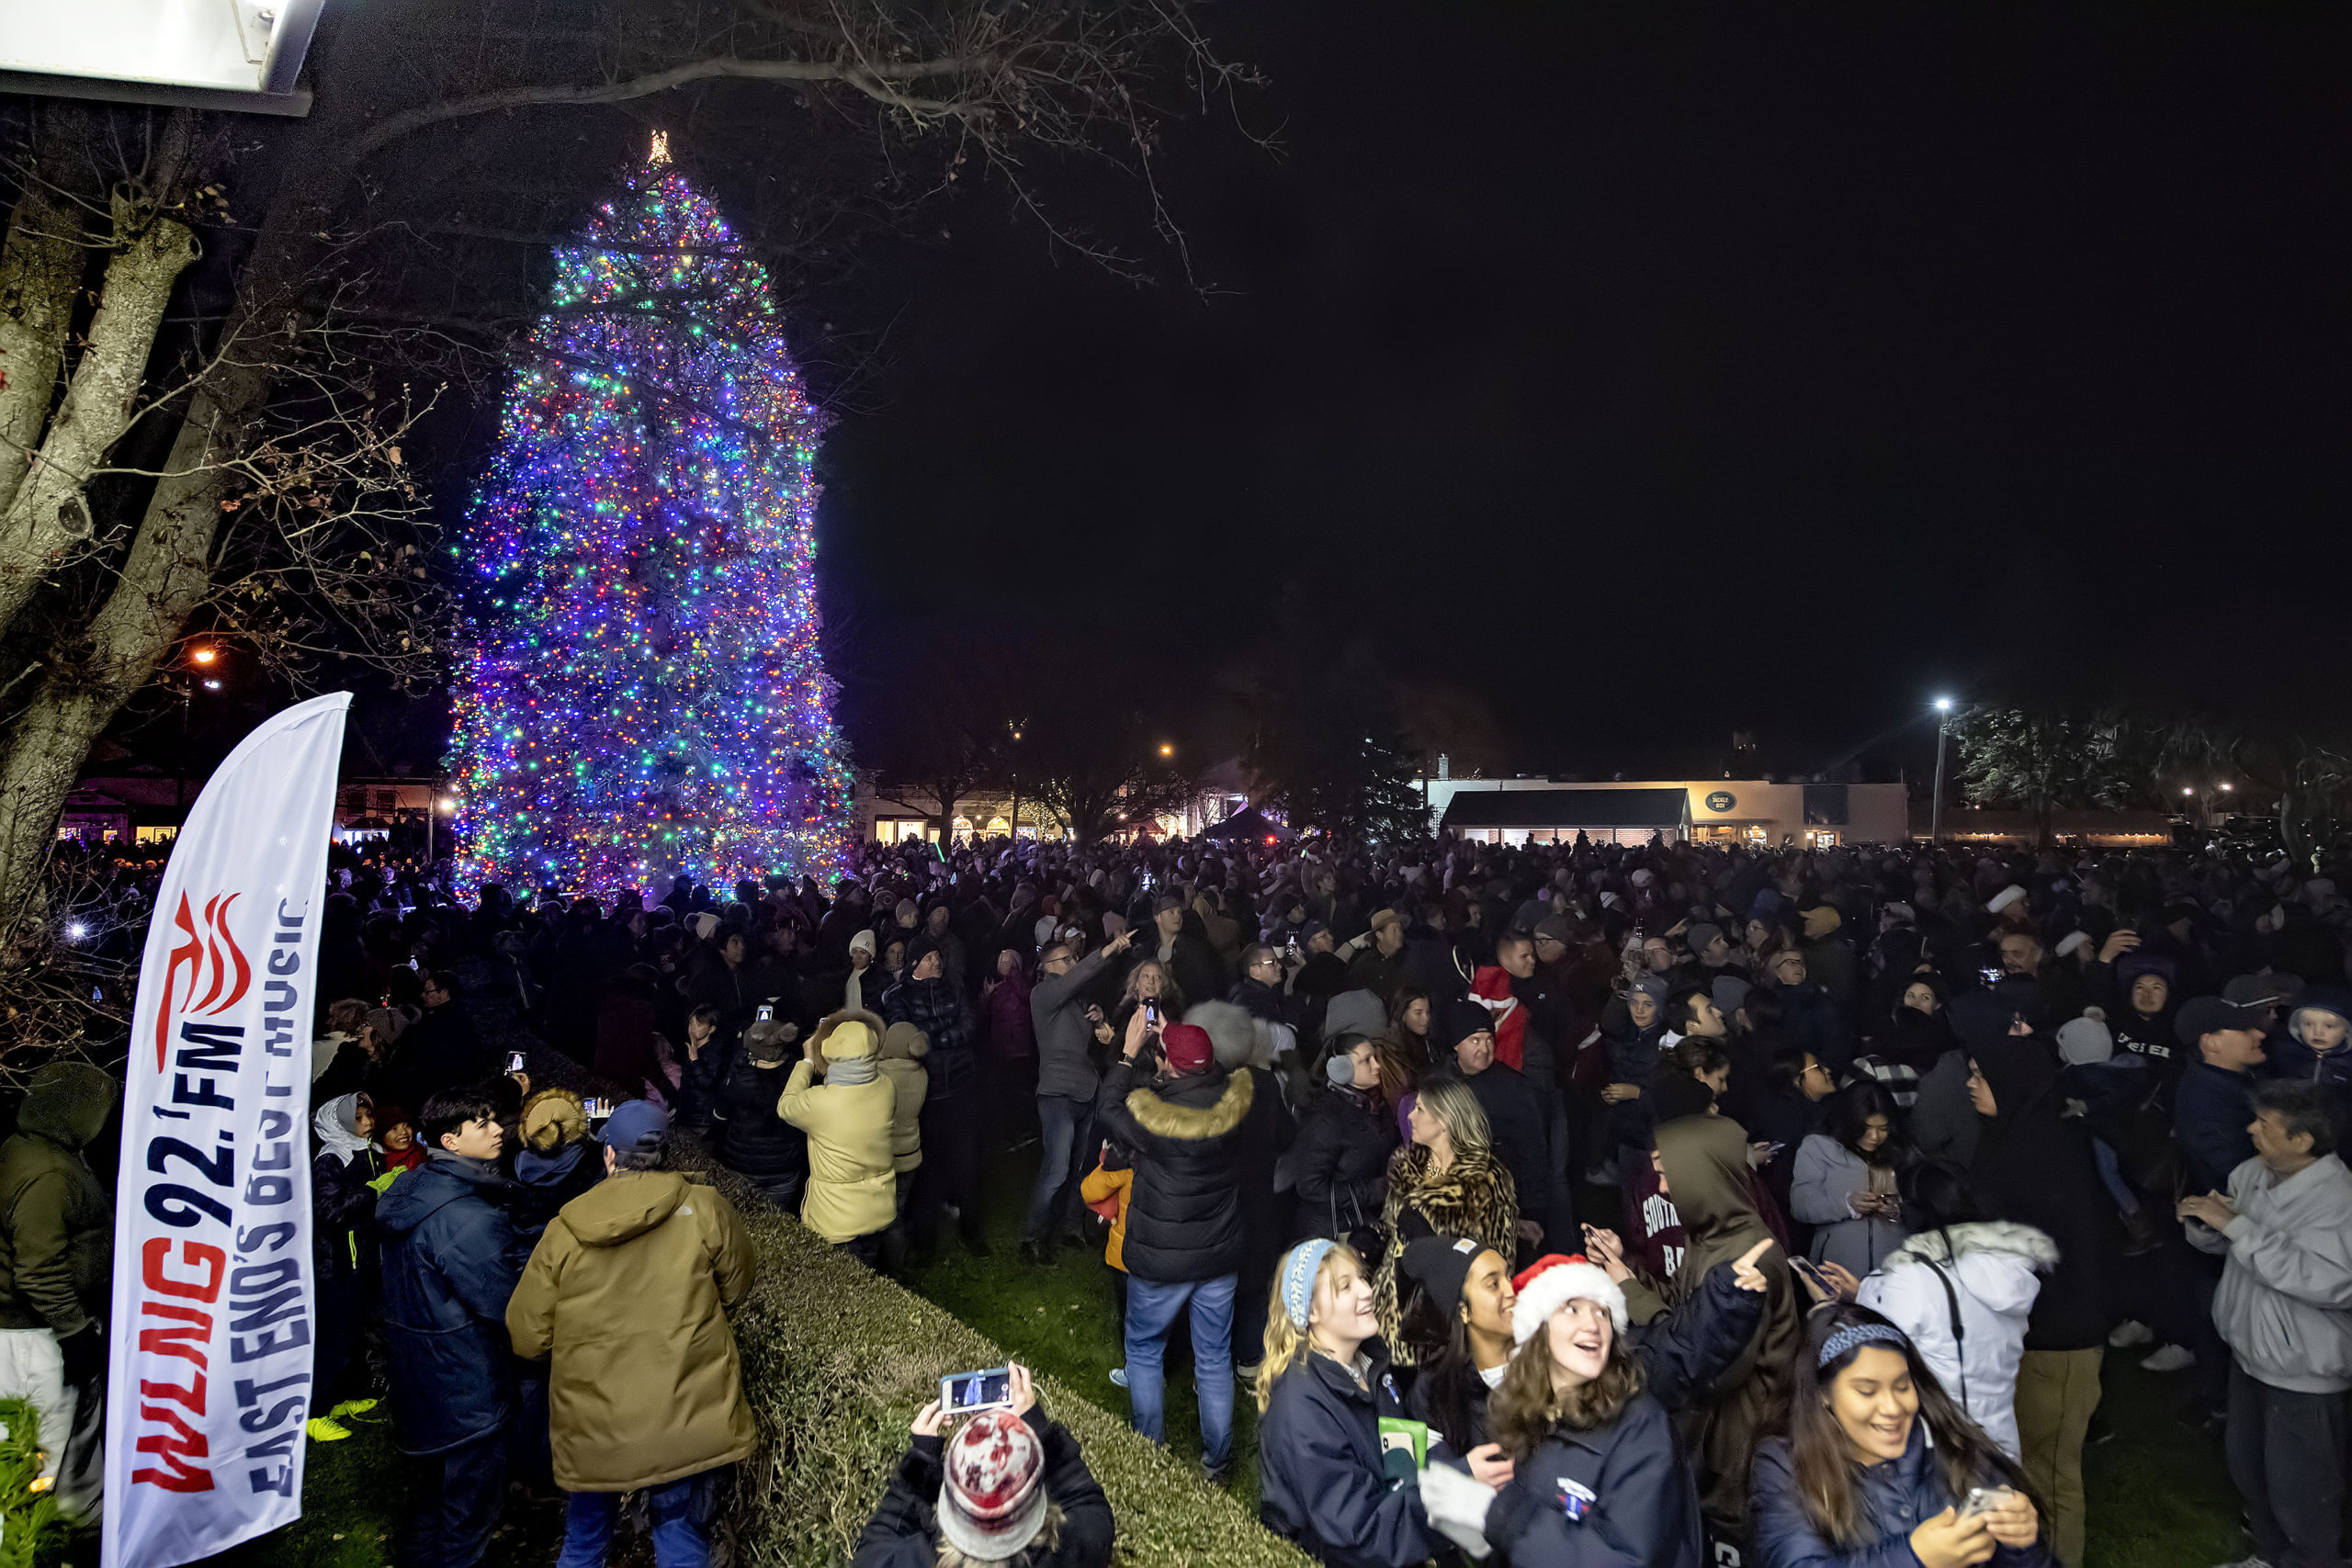 Thed crowd reacts as the fireworks begin during the Christmas Tree-Lighting Ceremony and Fireworks in Agawam Park following the 2019